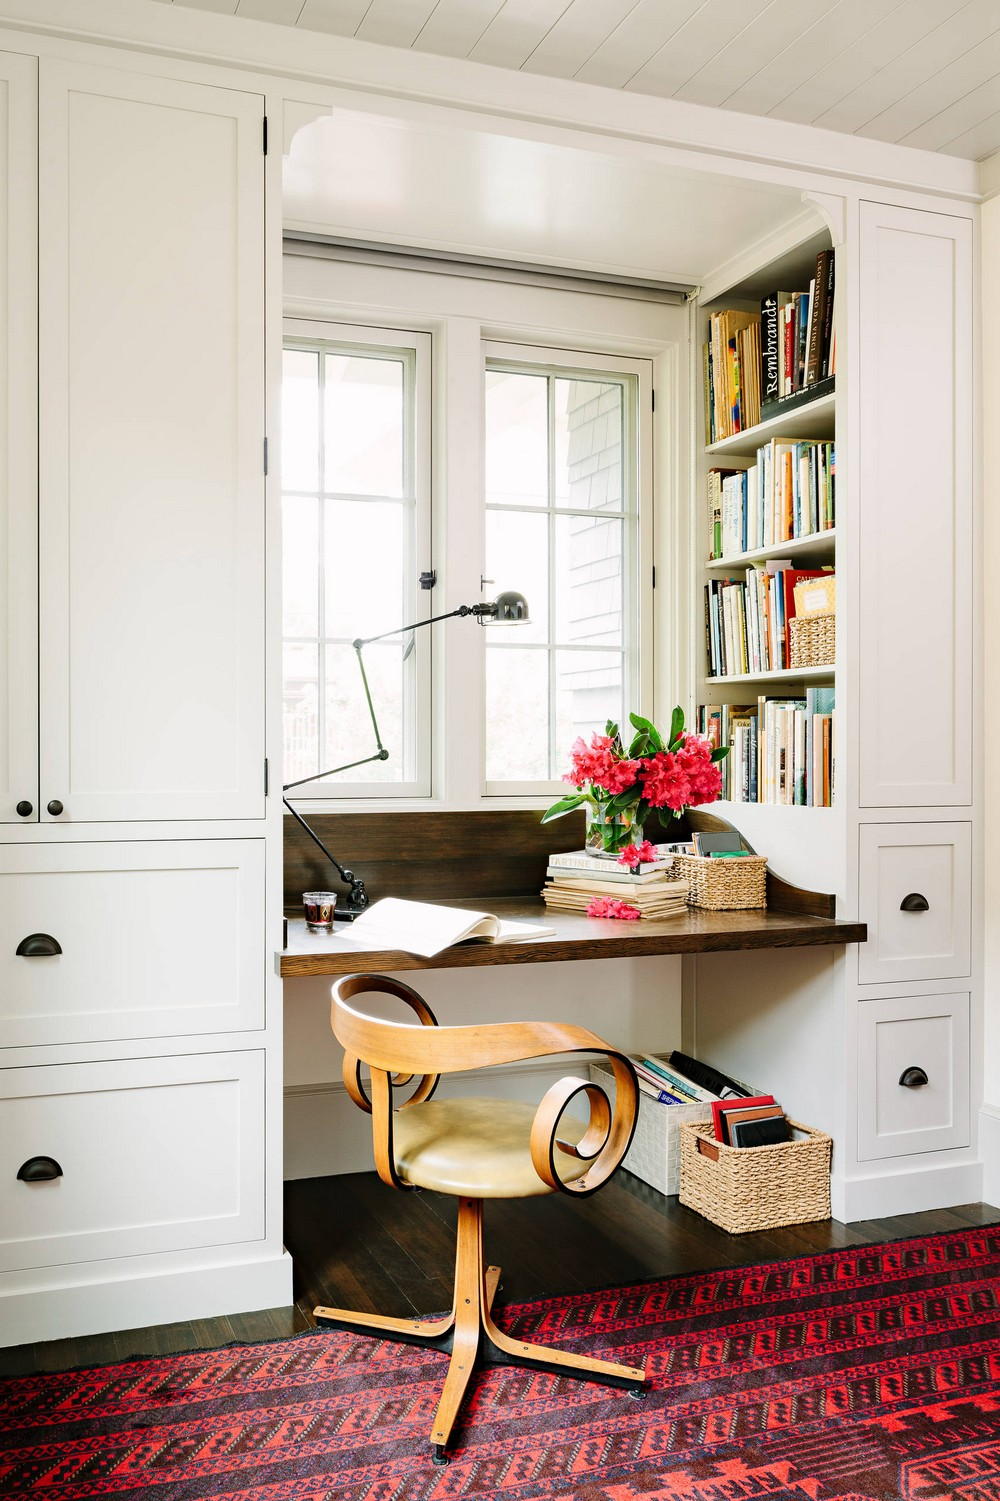 18 Awe-Inspiring Home Office Designs full of Colors and Textures 7 home office designs 17 Awe-Inspiring Home Office Designs full of Colors and Textures 18 Awe Inspiring Home Office Designs full of Colors and Textures 7